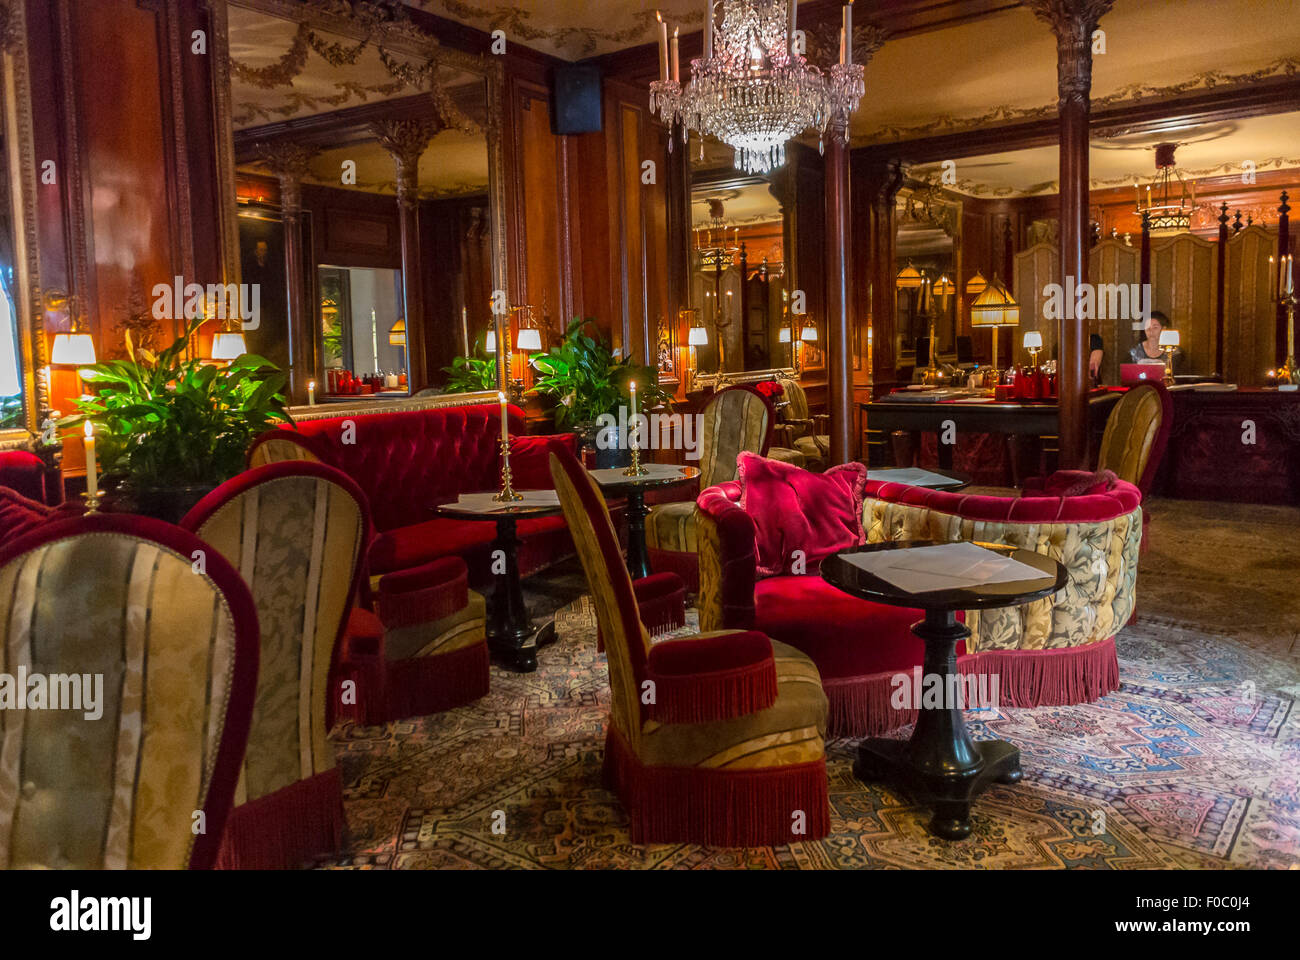 Paris France Inside Luxury Quot Hotel Costes Quot French Bar